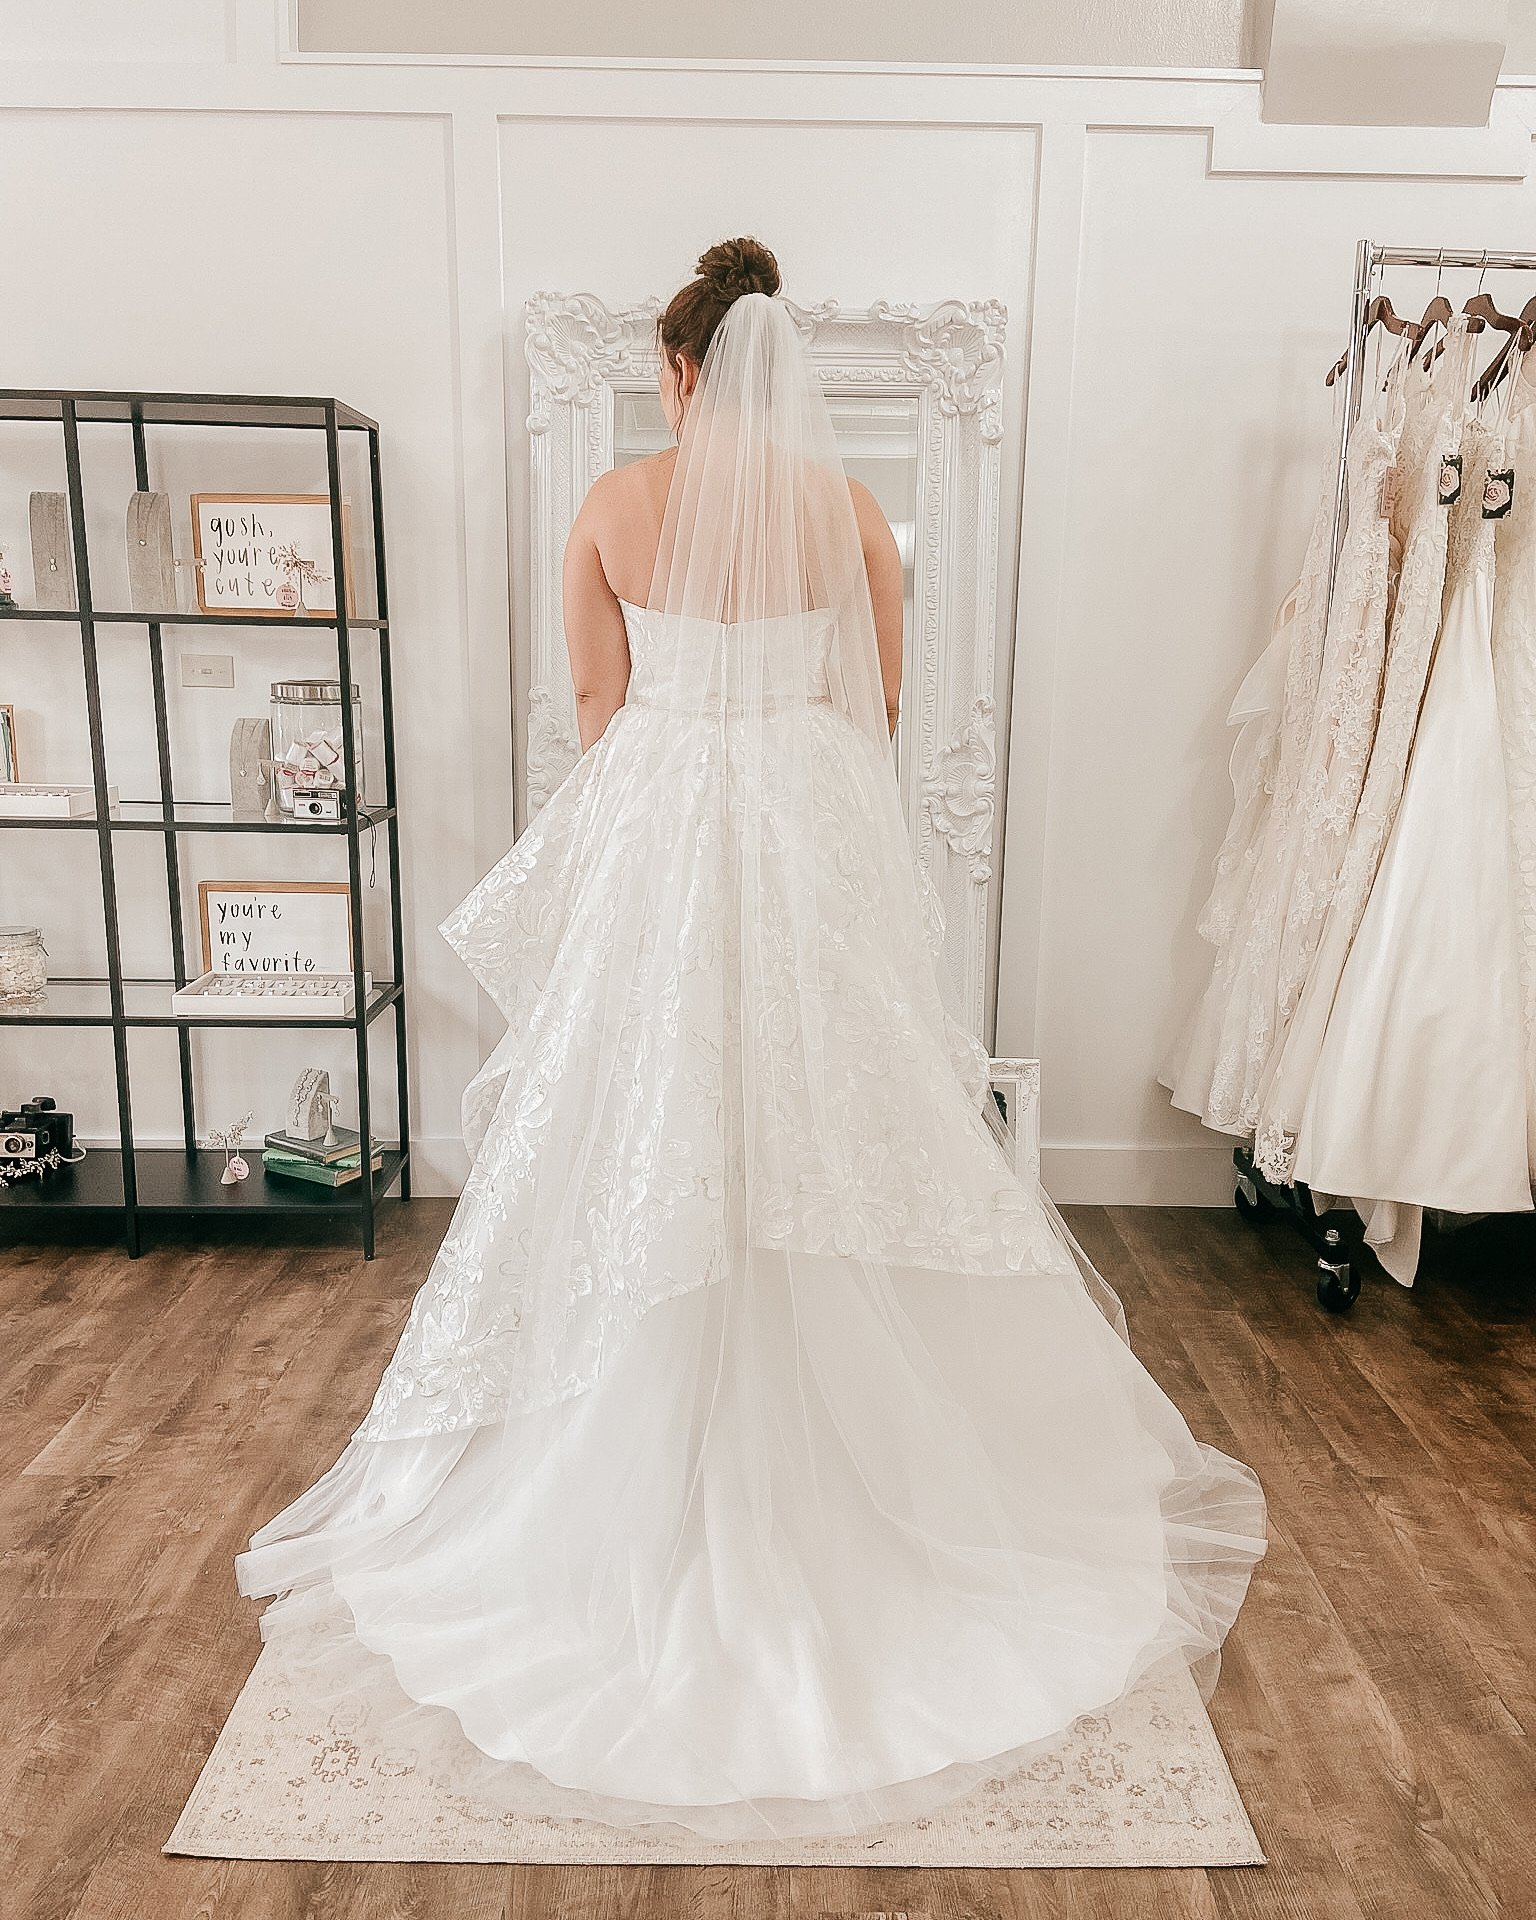 floor length veil in an Indianapolis bridal boutique